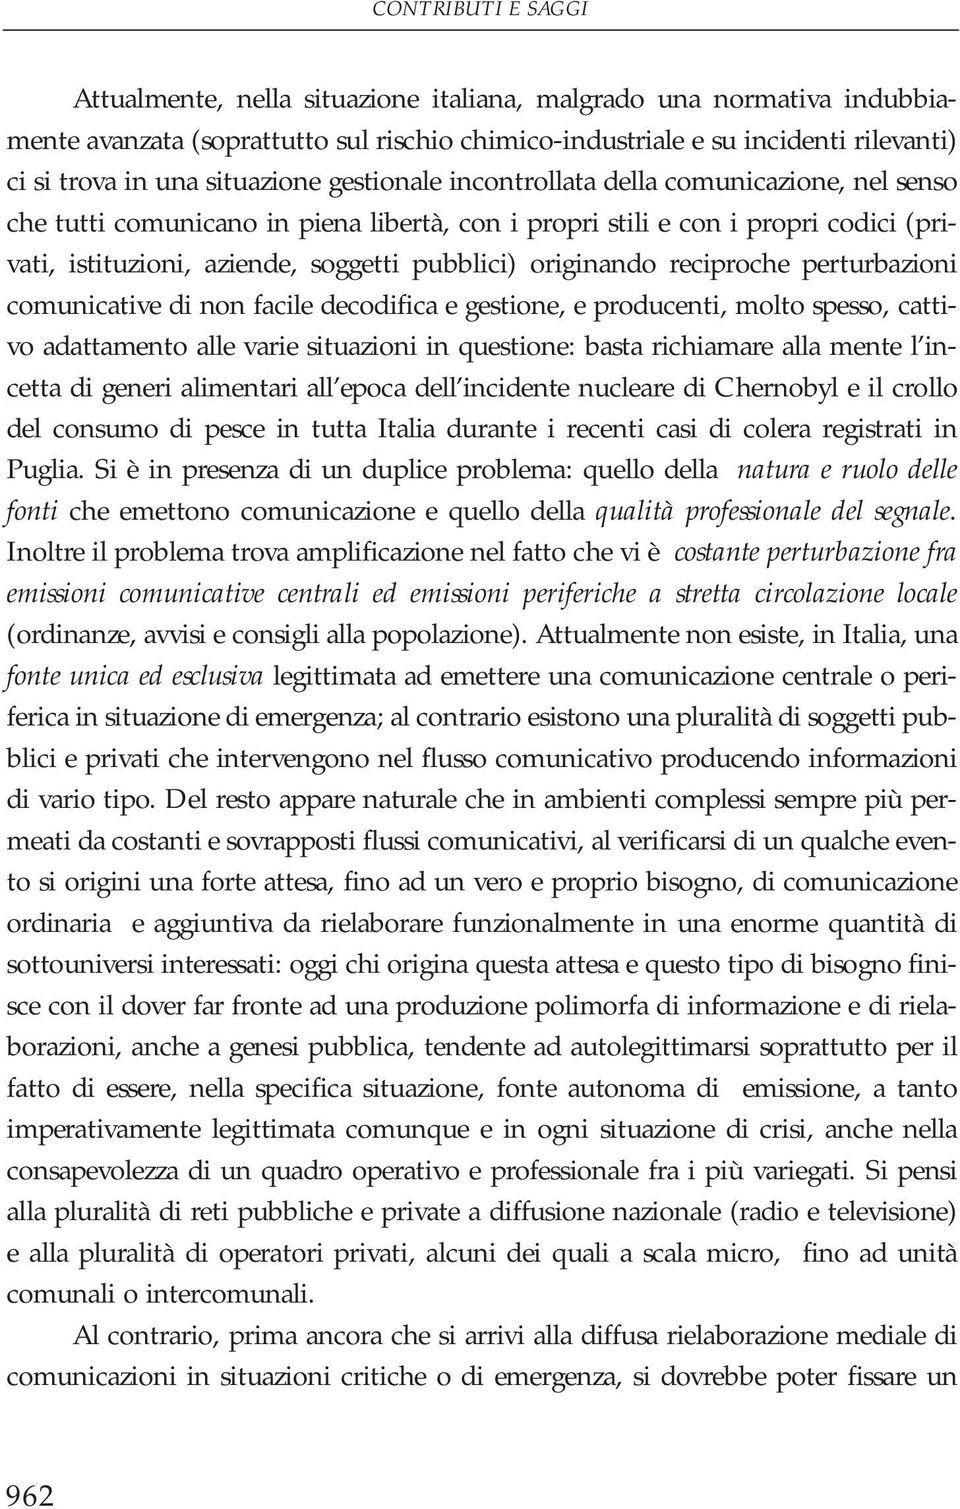 originando reciproche perturbazioni comunicative di non facile decodifica e gestione, e producenti, molto spesso, cattivo adattamento alle varie situazioni in questione: basta richiamare alla mente l